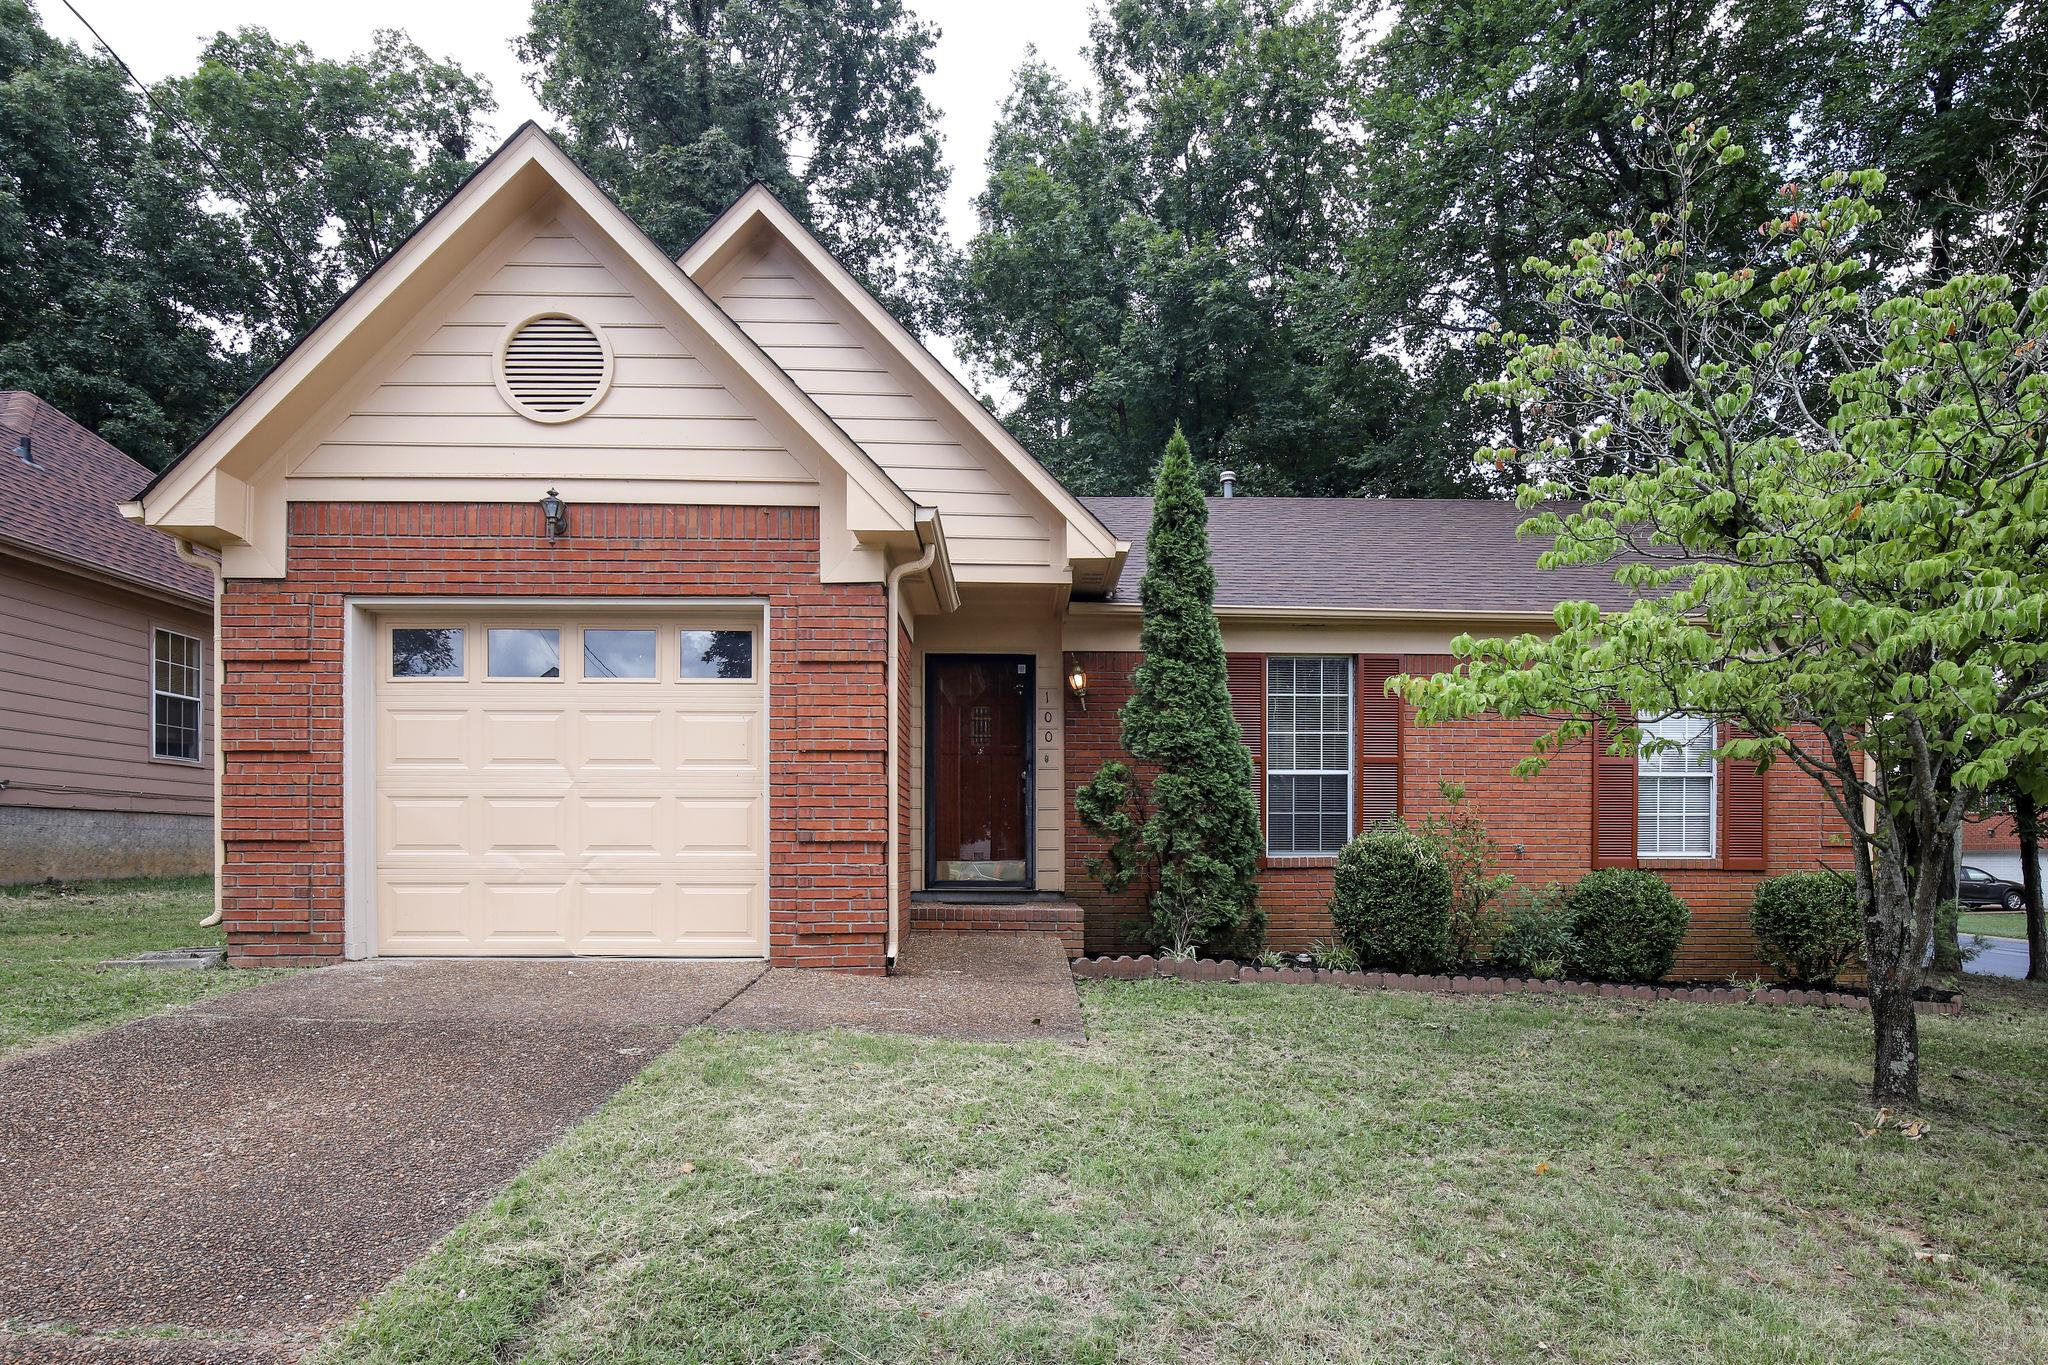 100 Ellsworth Pl, Nashville-Antioch in Davidson County County, TN 37013 Home for Sale